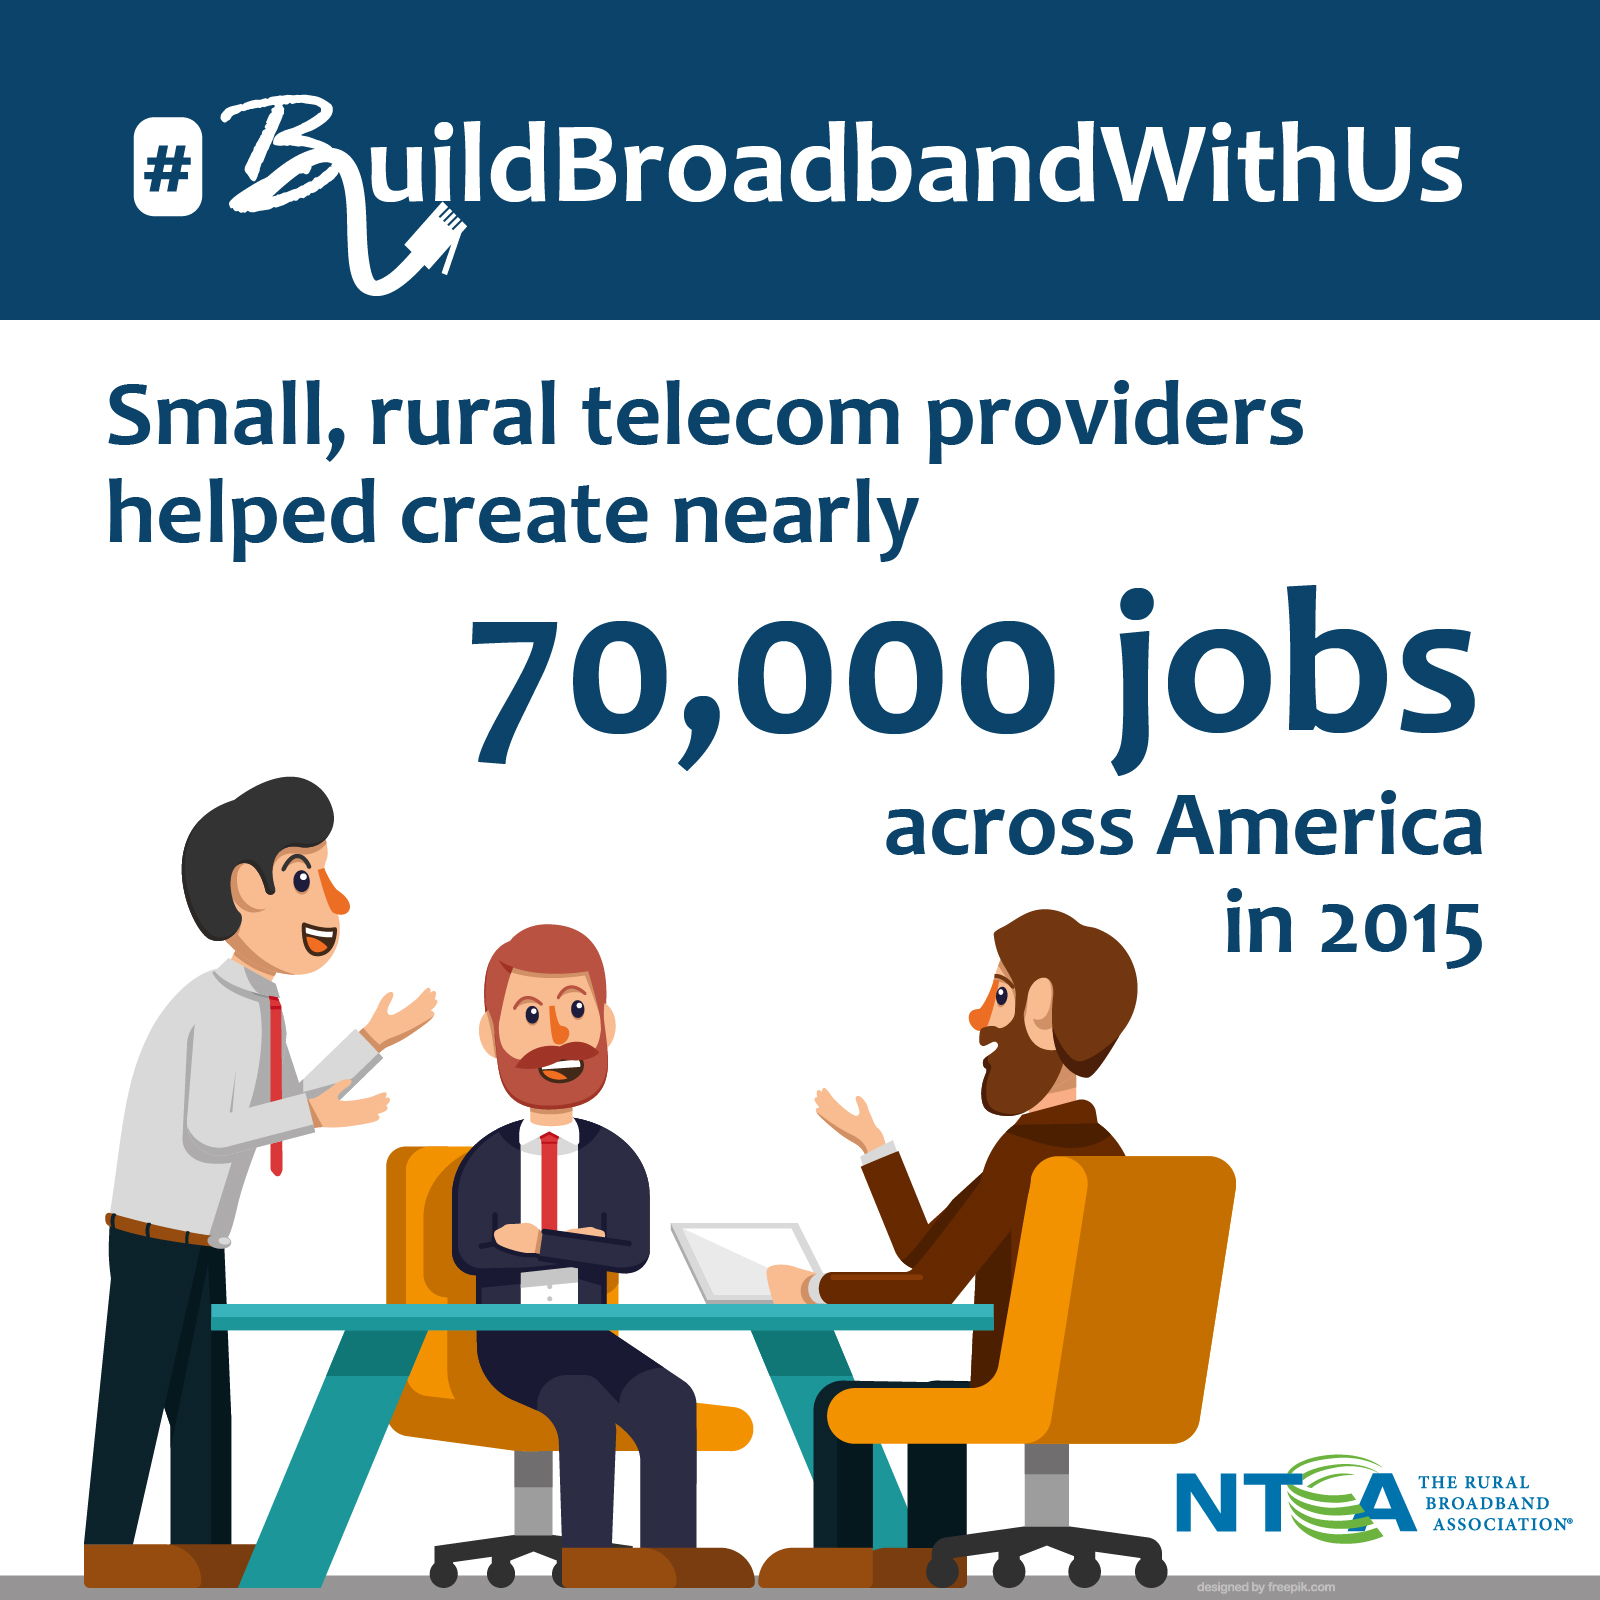 Small, rural broadband providers helped create nearly 70,000 jobs